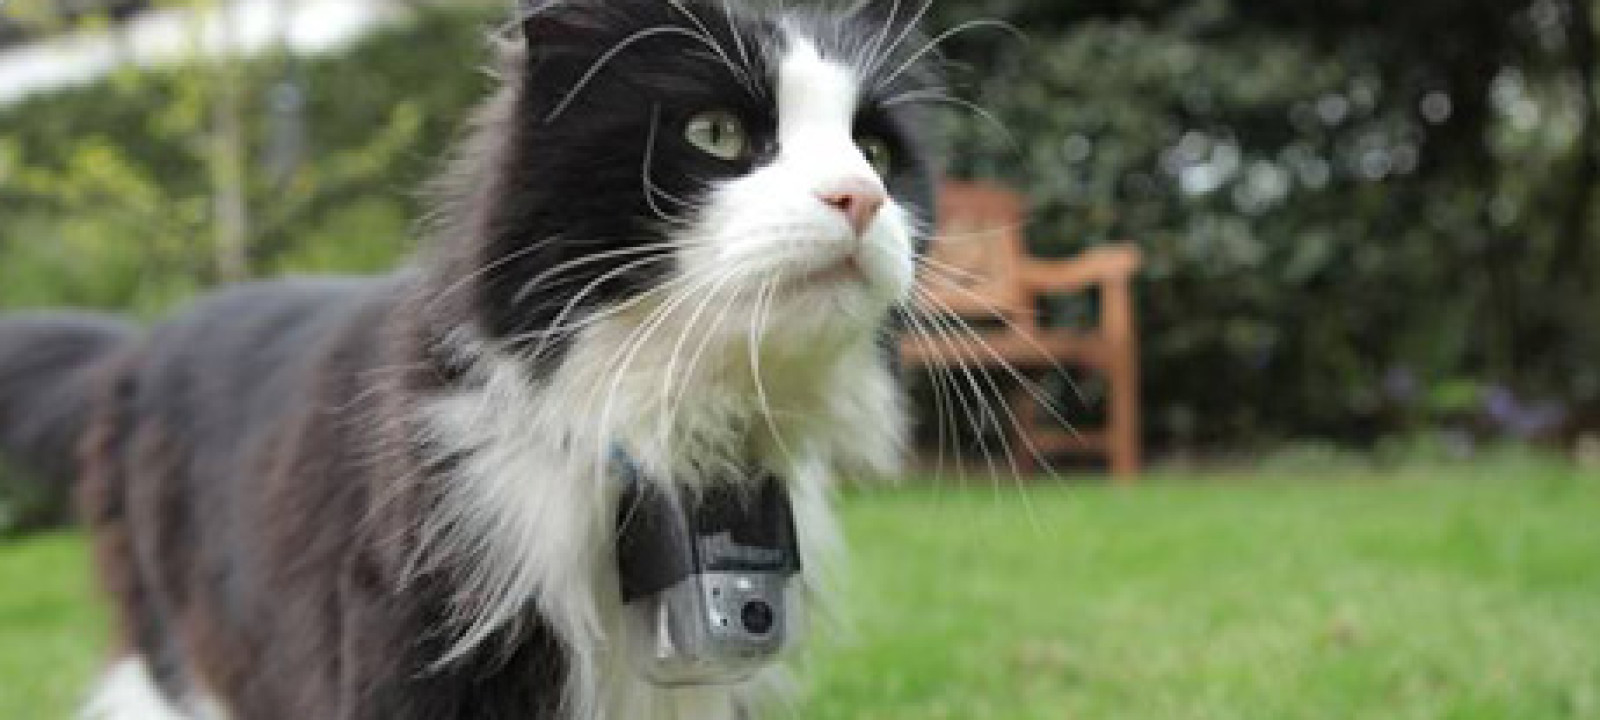 Thomas-catcam